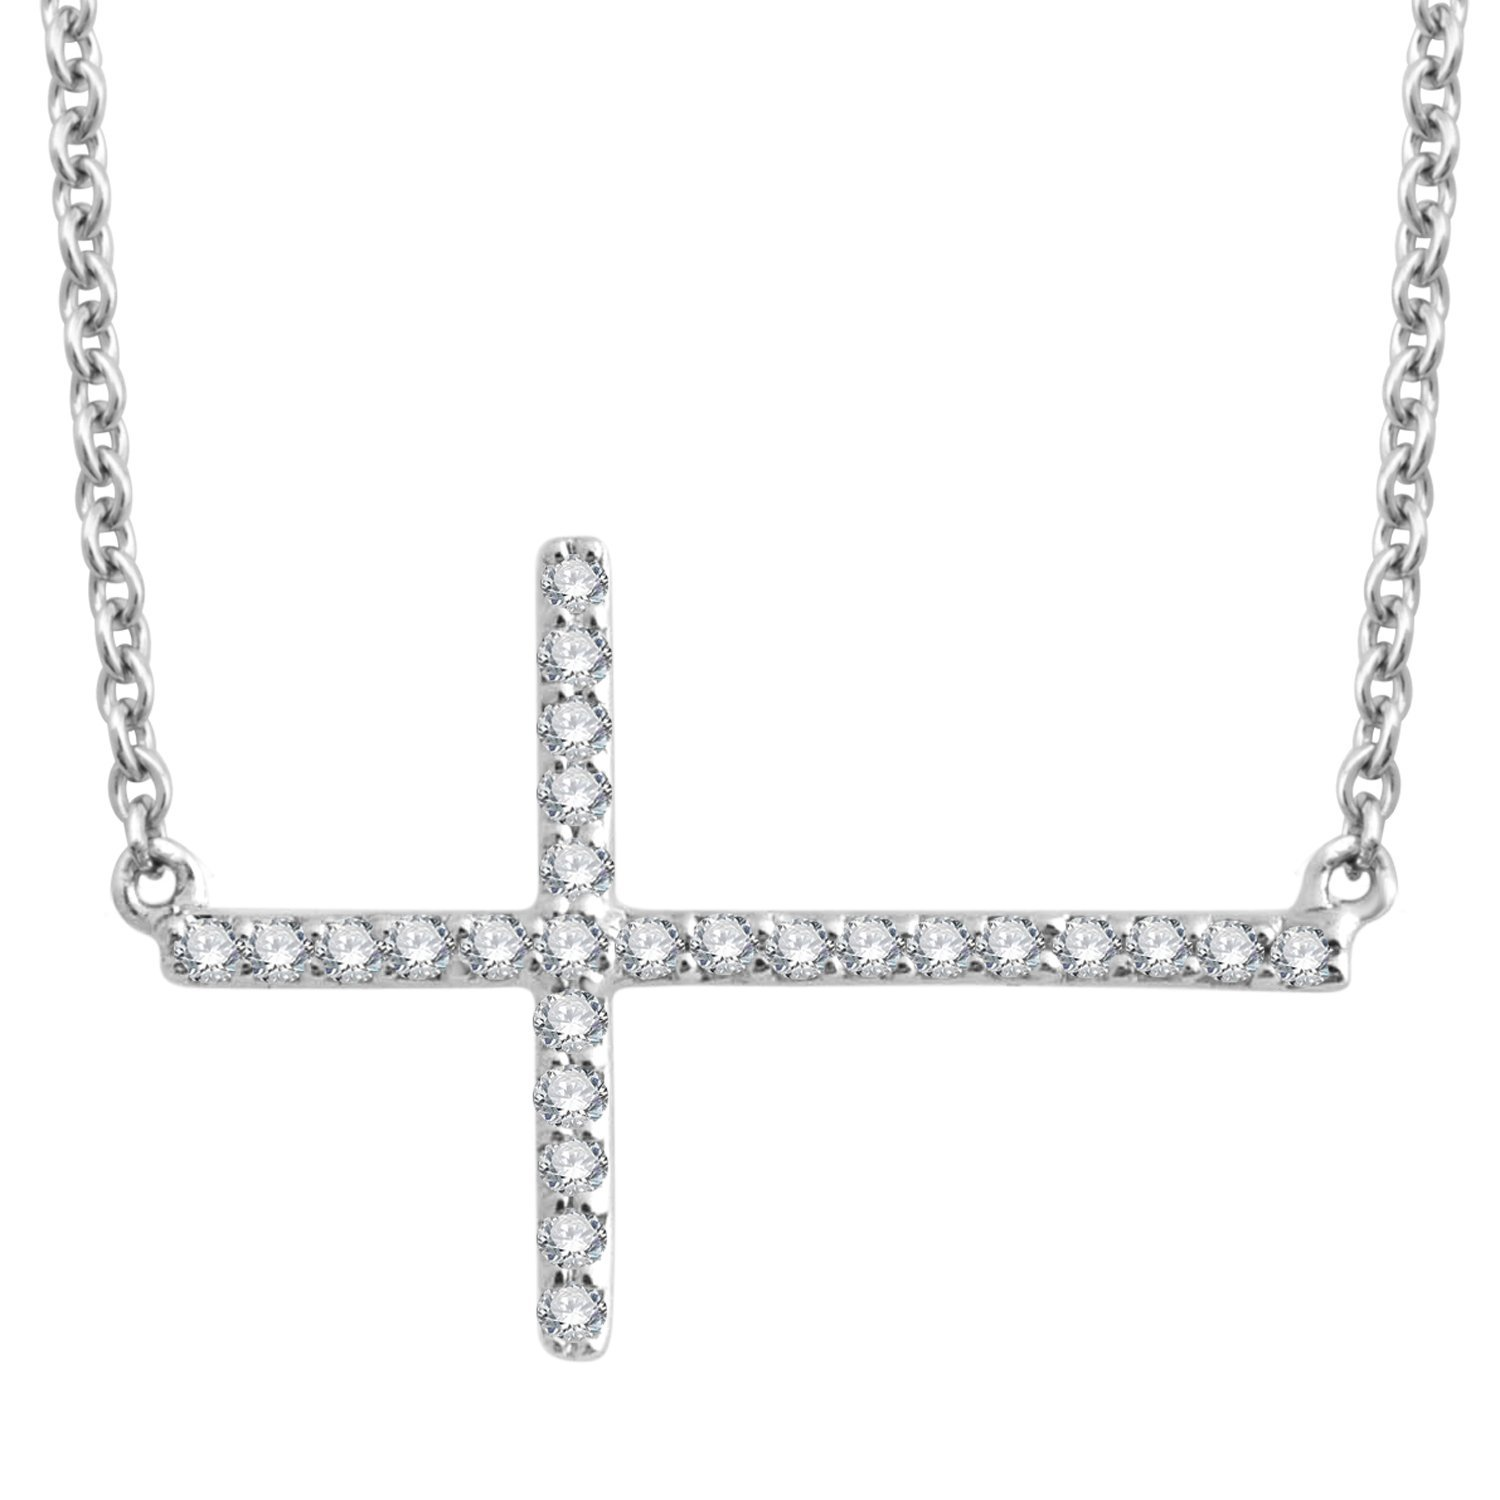 925 Sterling Silver Sideway Cross Diamond Pendant Necklace (0.09 carat)